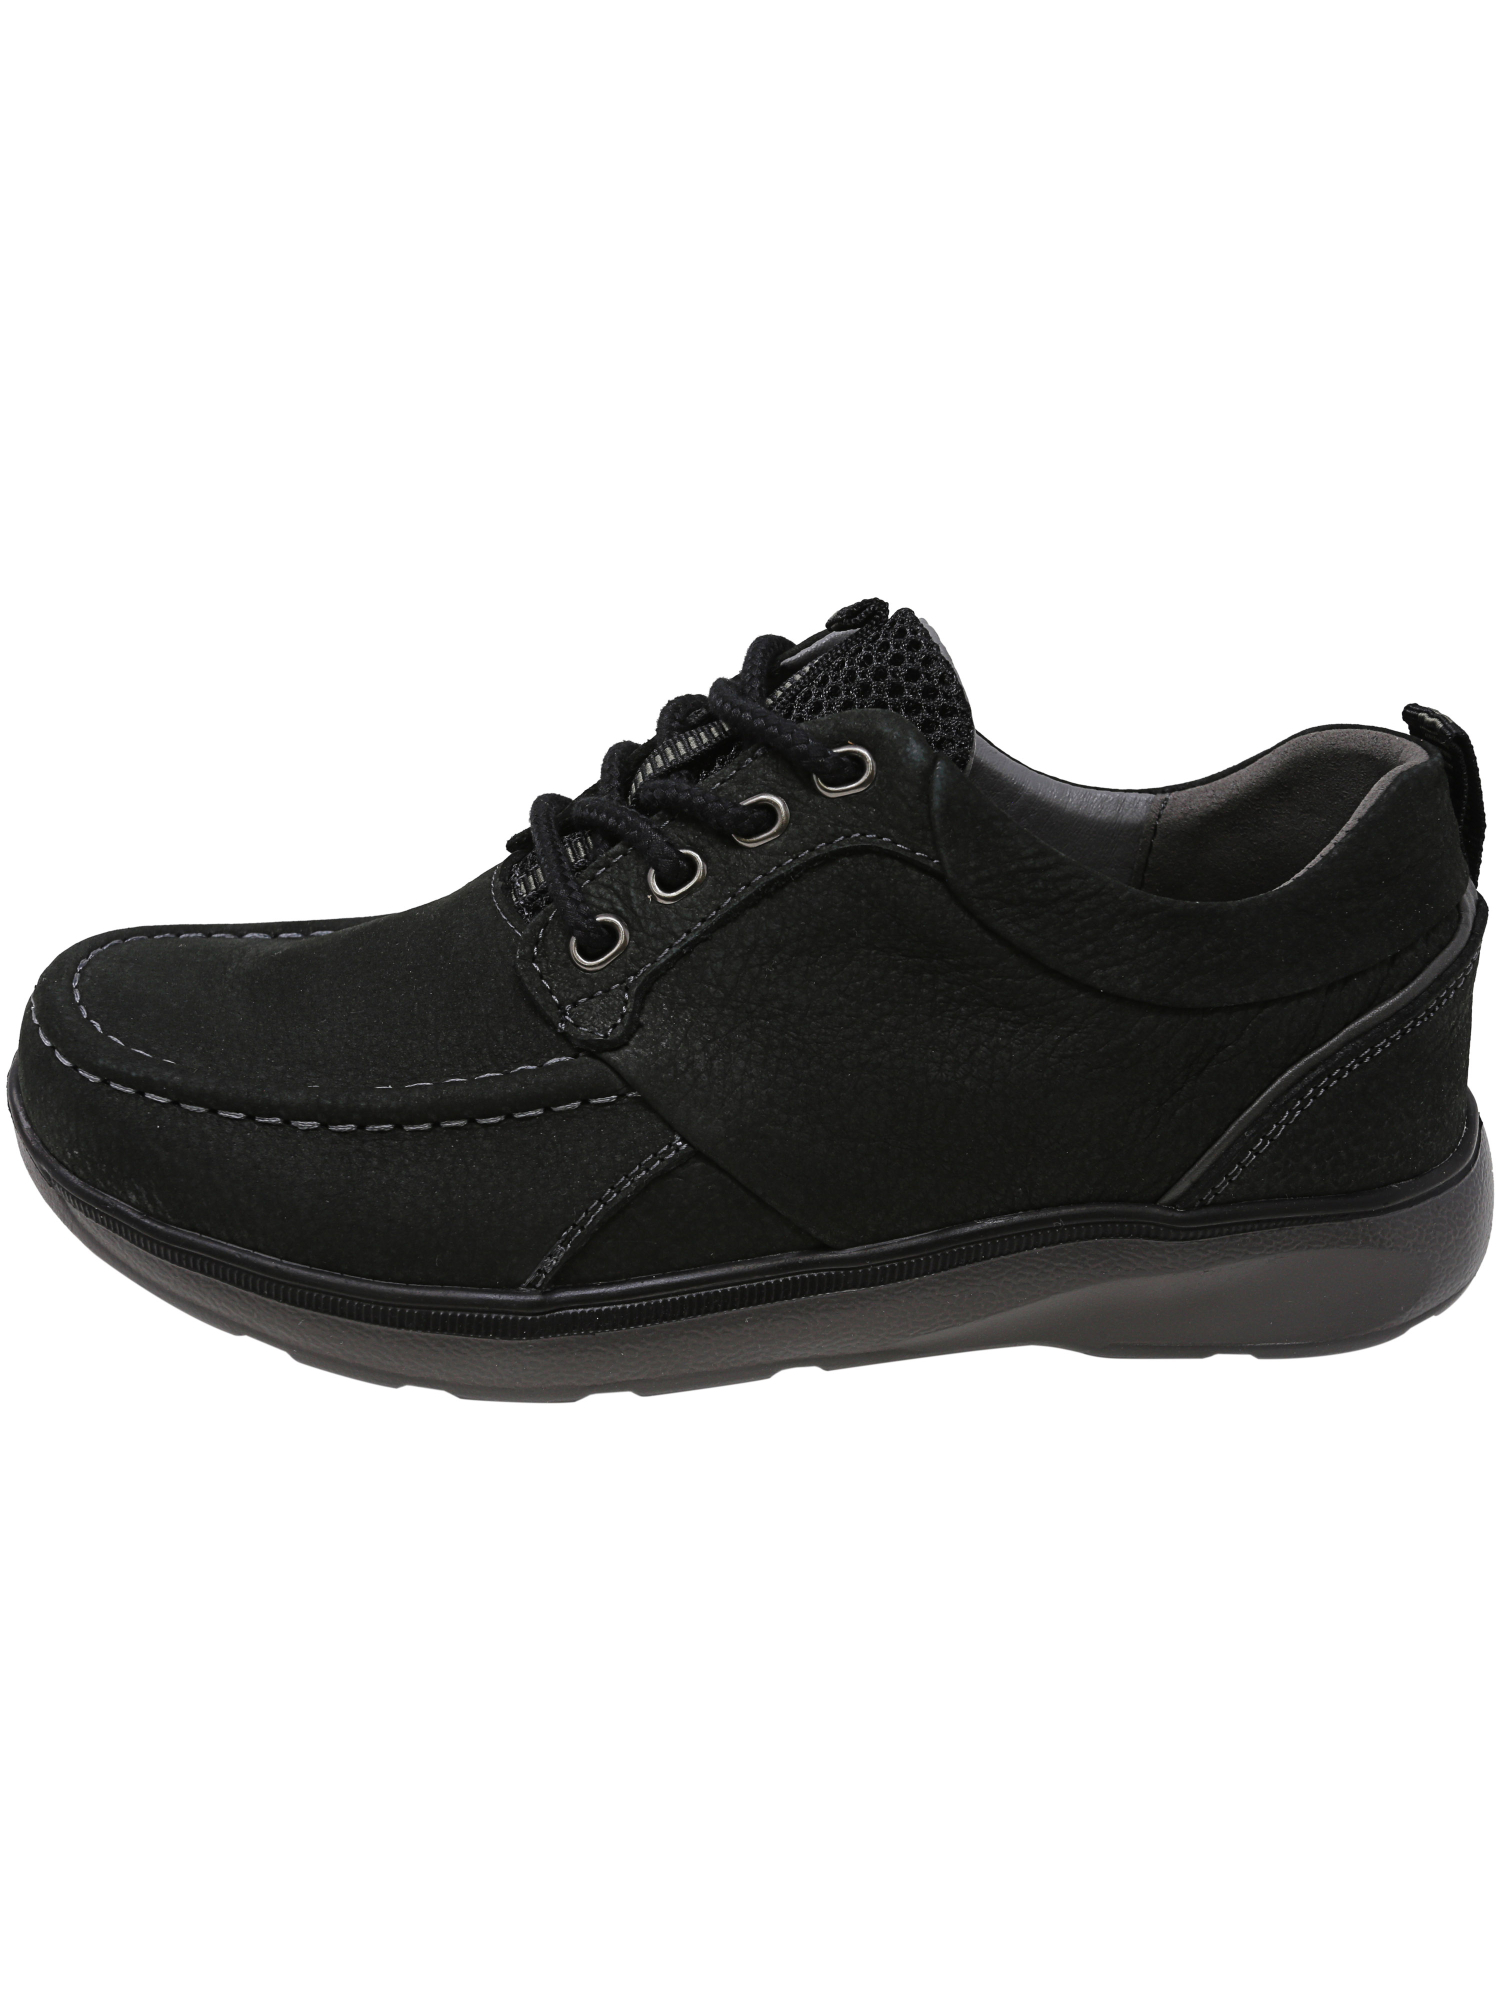 Propet Men/'s Orson Ankle-High Leather Oxford Shoe